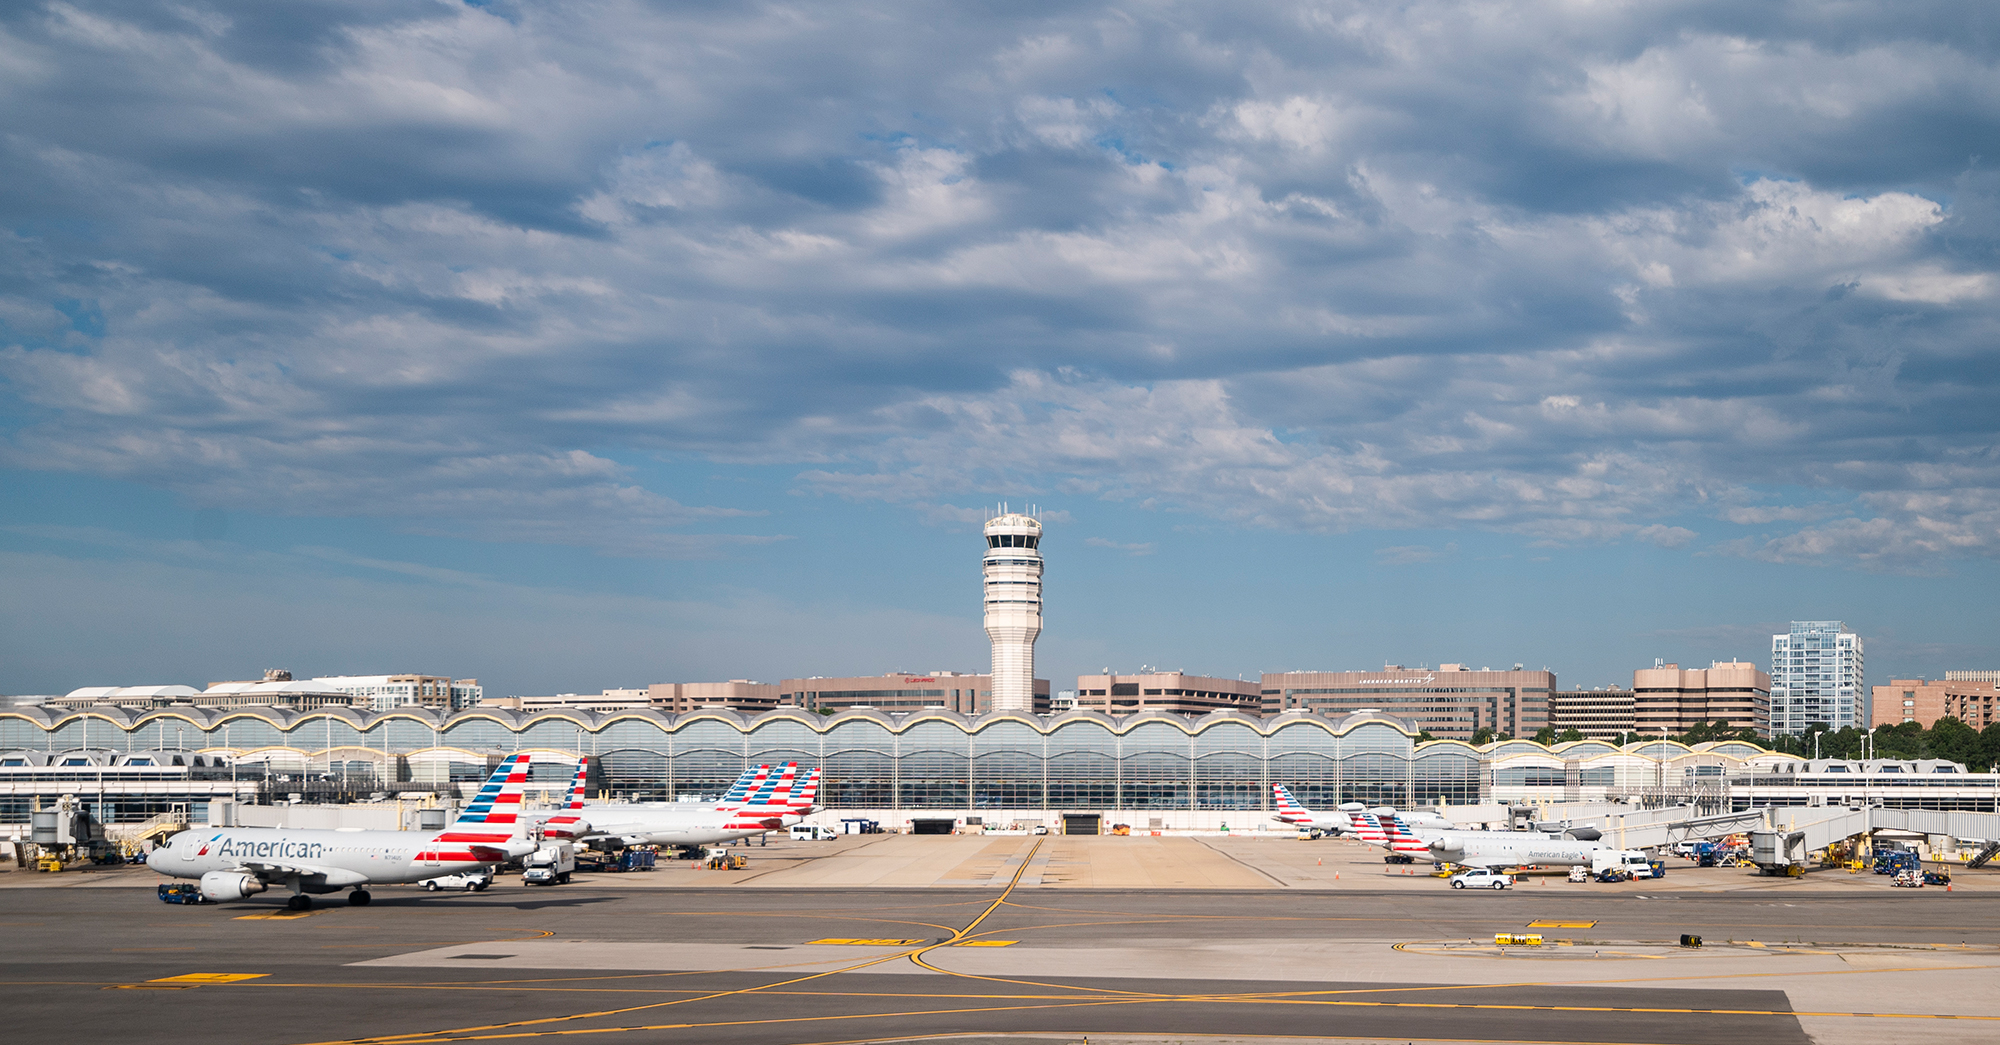 FAA's new cleaning methods at air traffic towers aim to curb flight delays